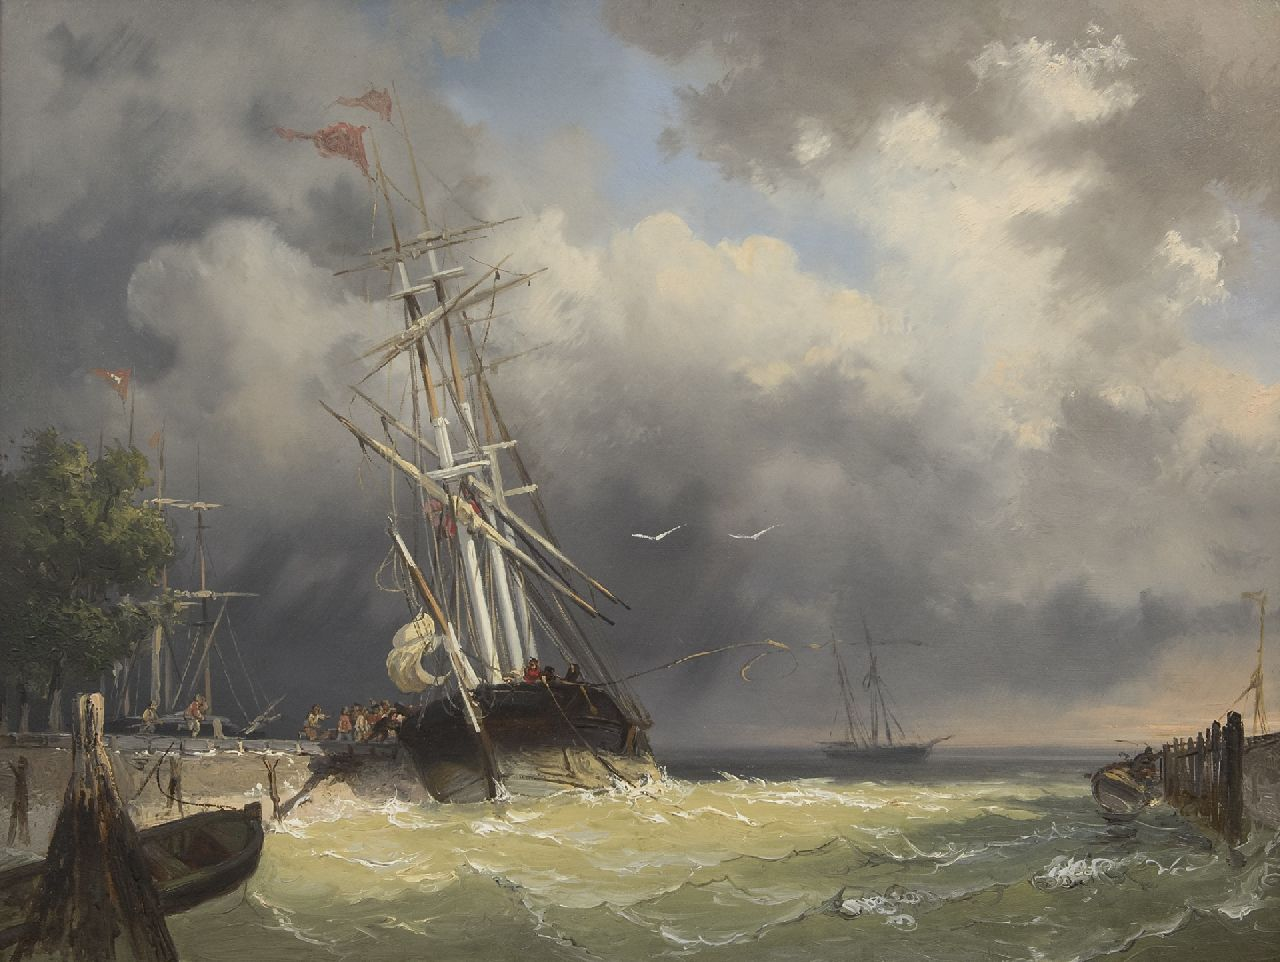 Frans Arnold Breuhaus de Groot | A threemaster entering the harbour in a storm, oil on panel, 44.4 x 59.5 cm